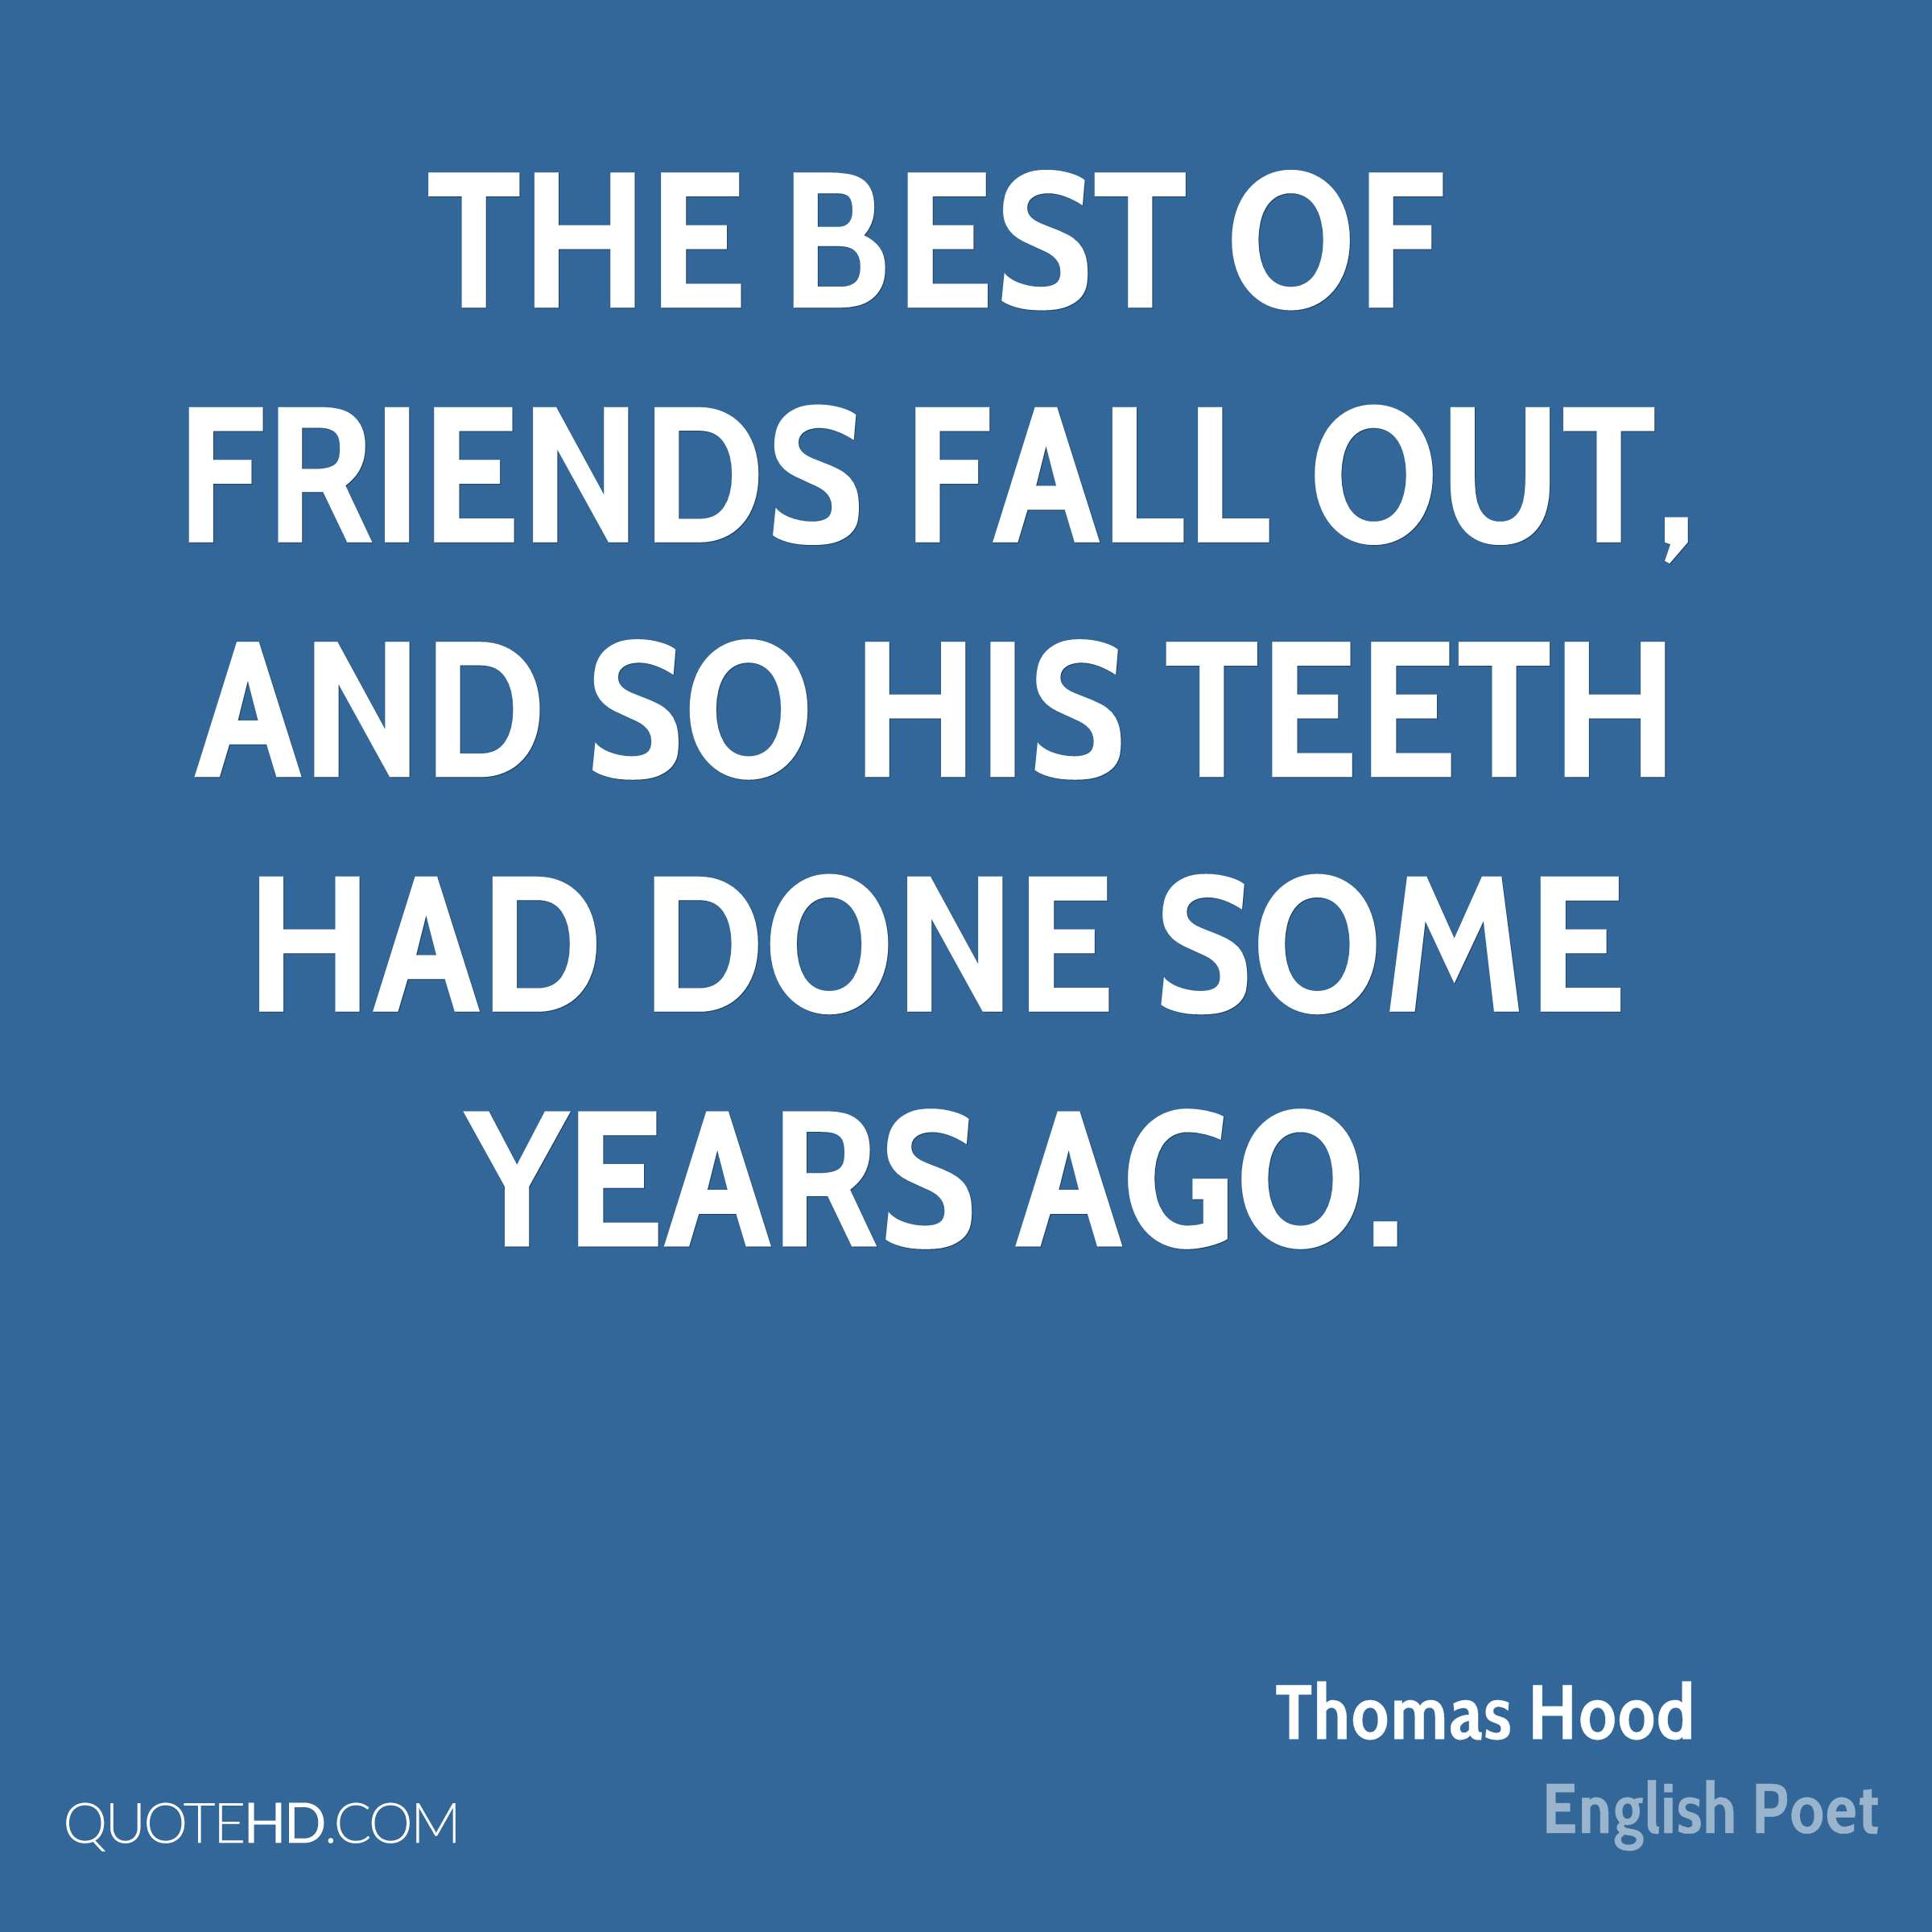 The best of friends fall out, and so his teeth had done some years ago.